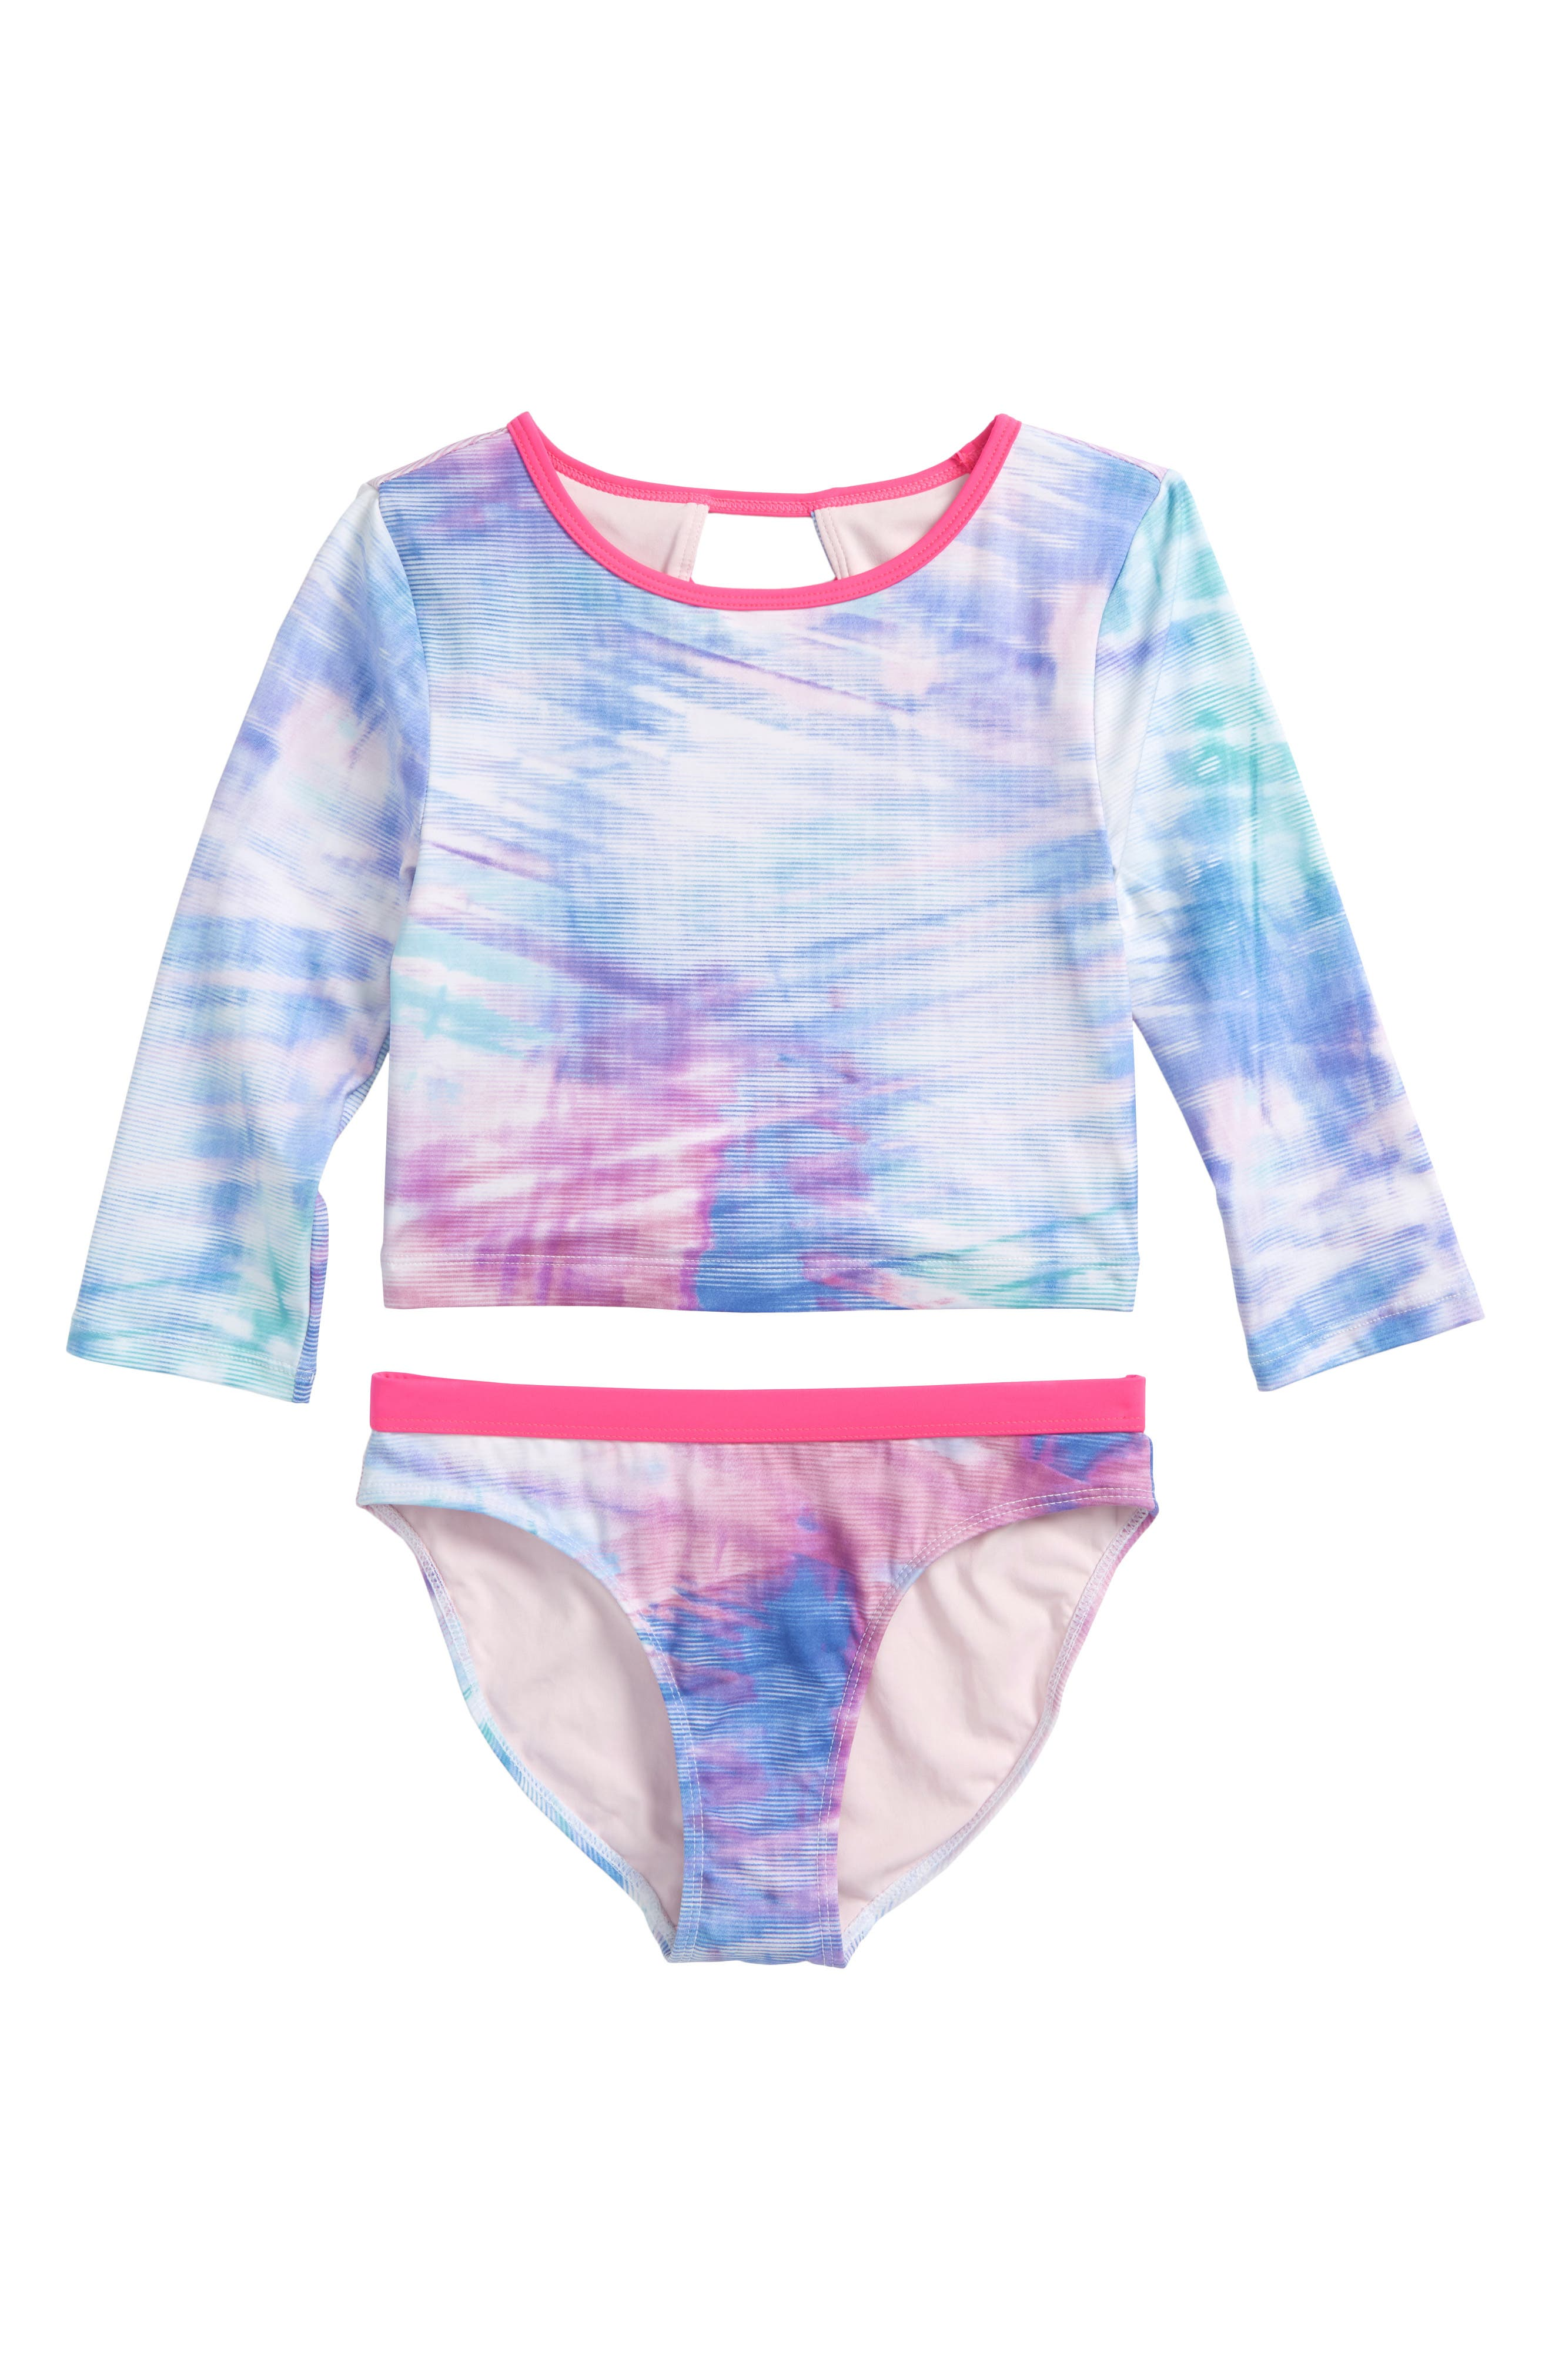 Scoop Two-Piece Rashguard Swimsuit,                         Main,                         color, Pink Neon Striped Wash